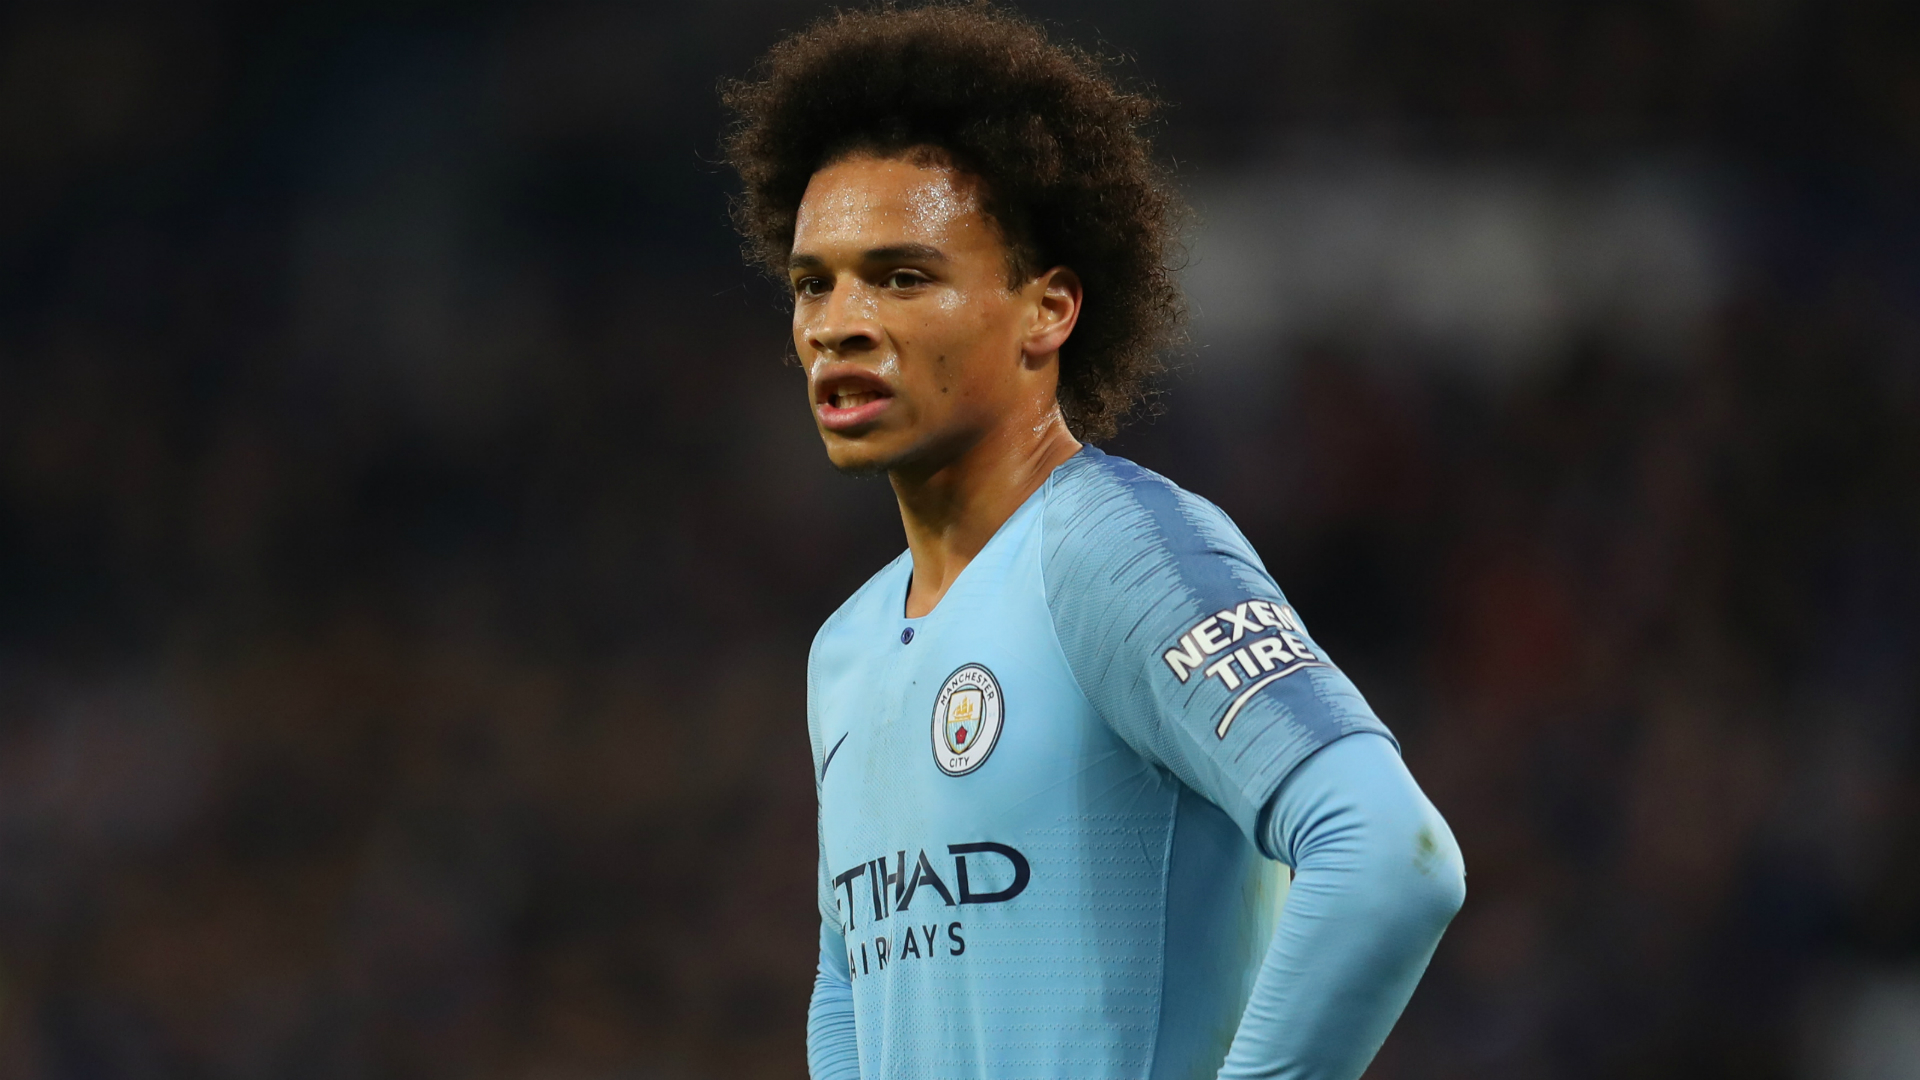 Bayern forced to 'wait and see' on Sane